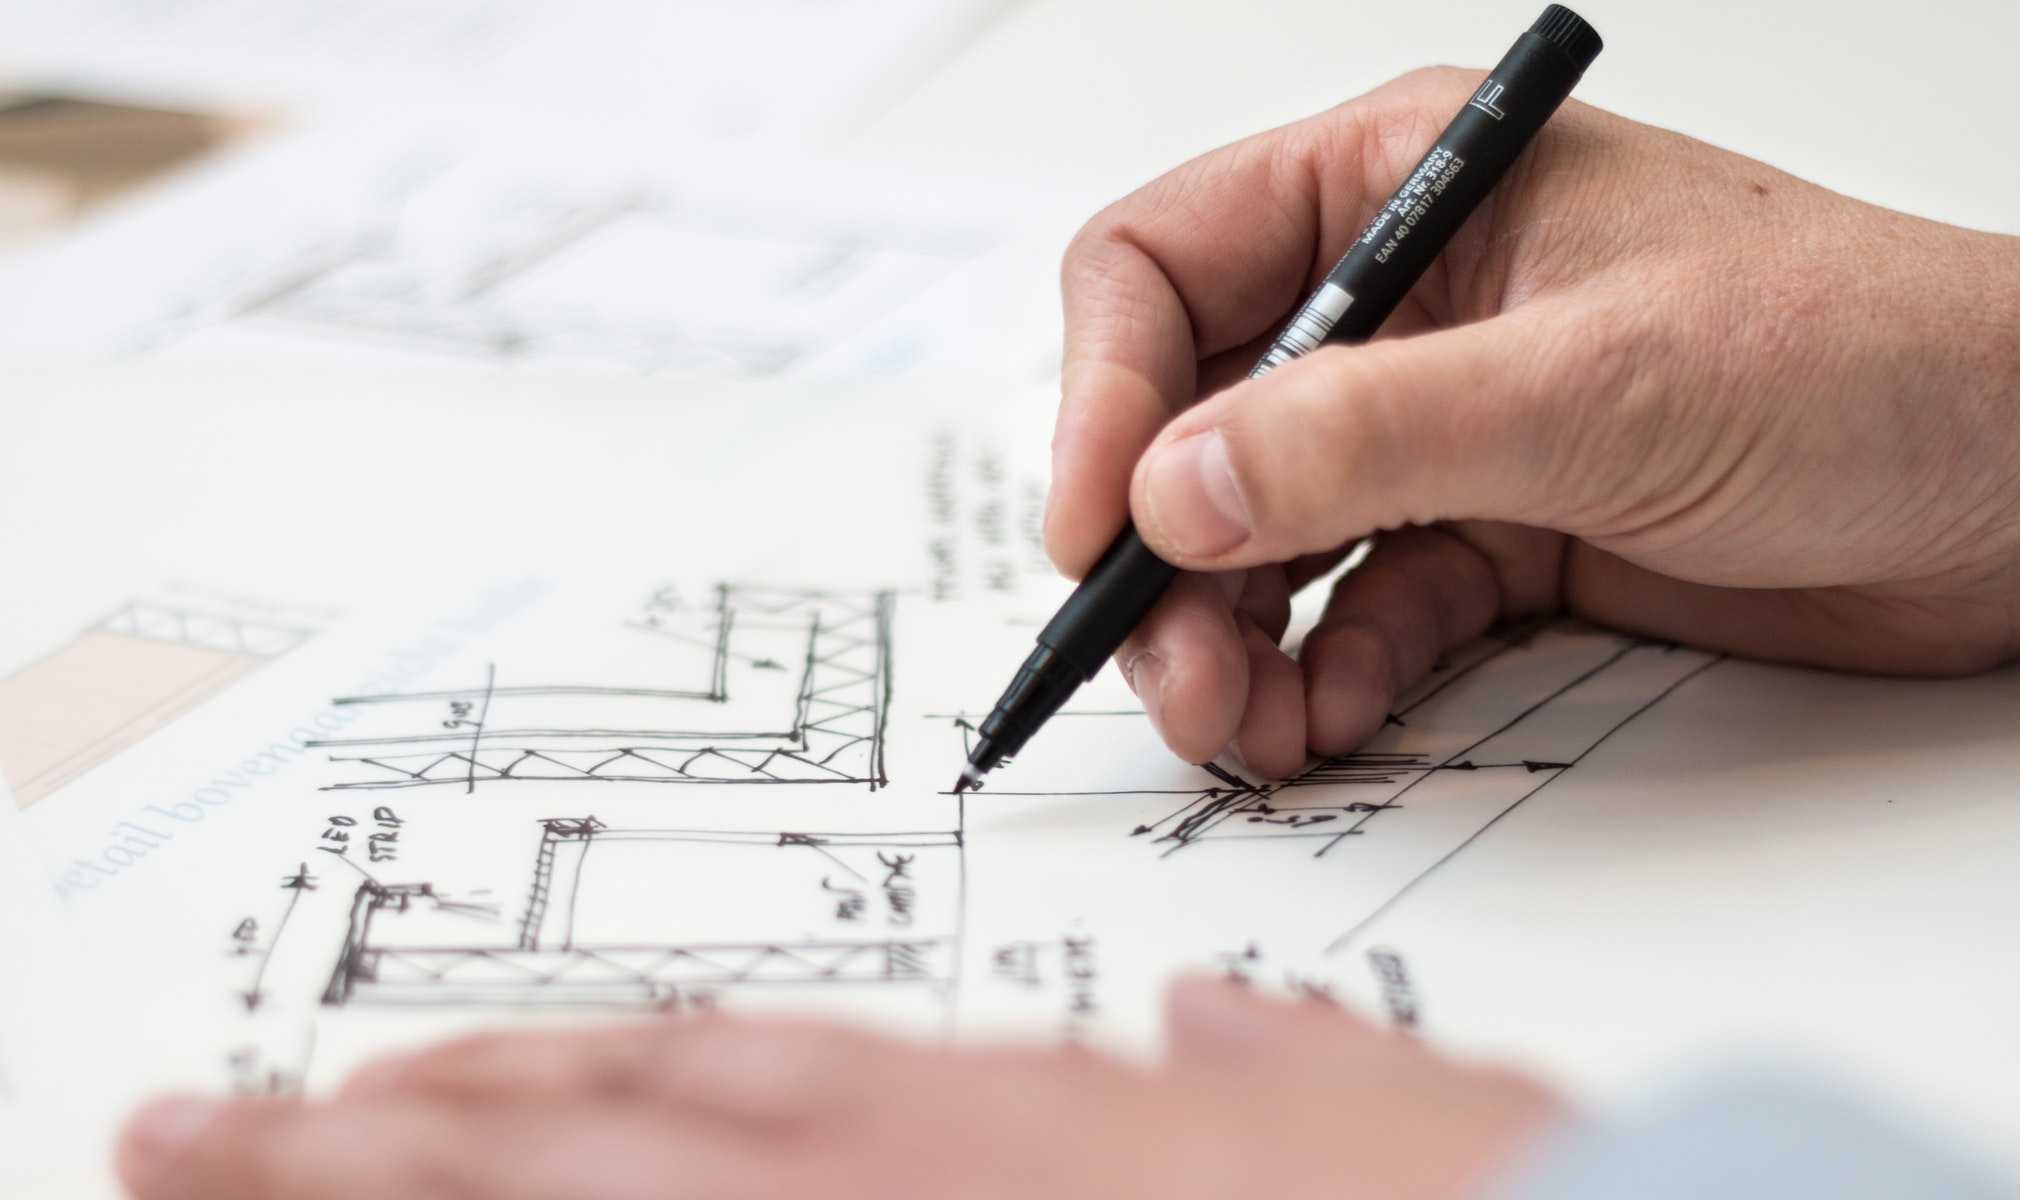 A man writing some kind of blueprints